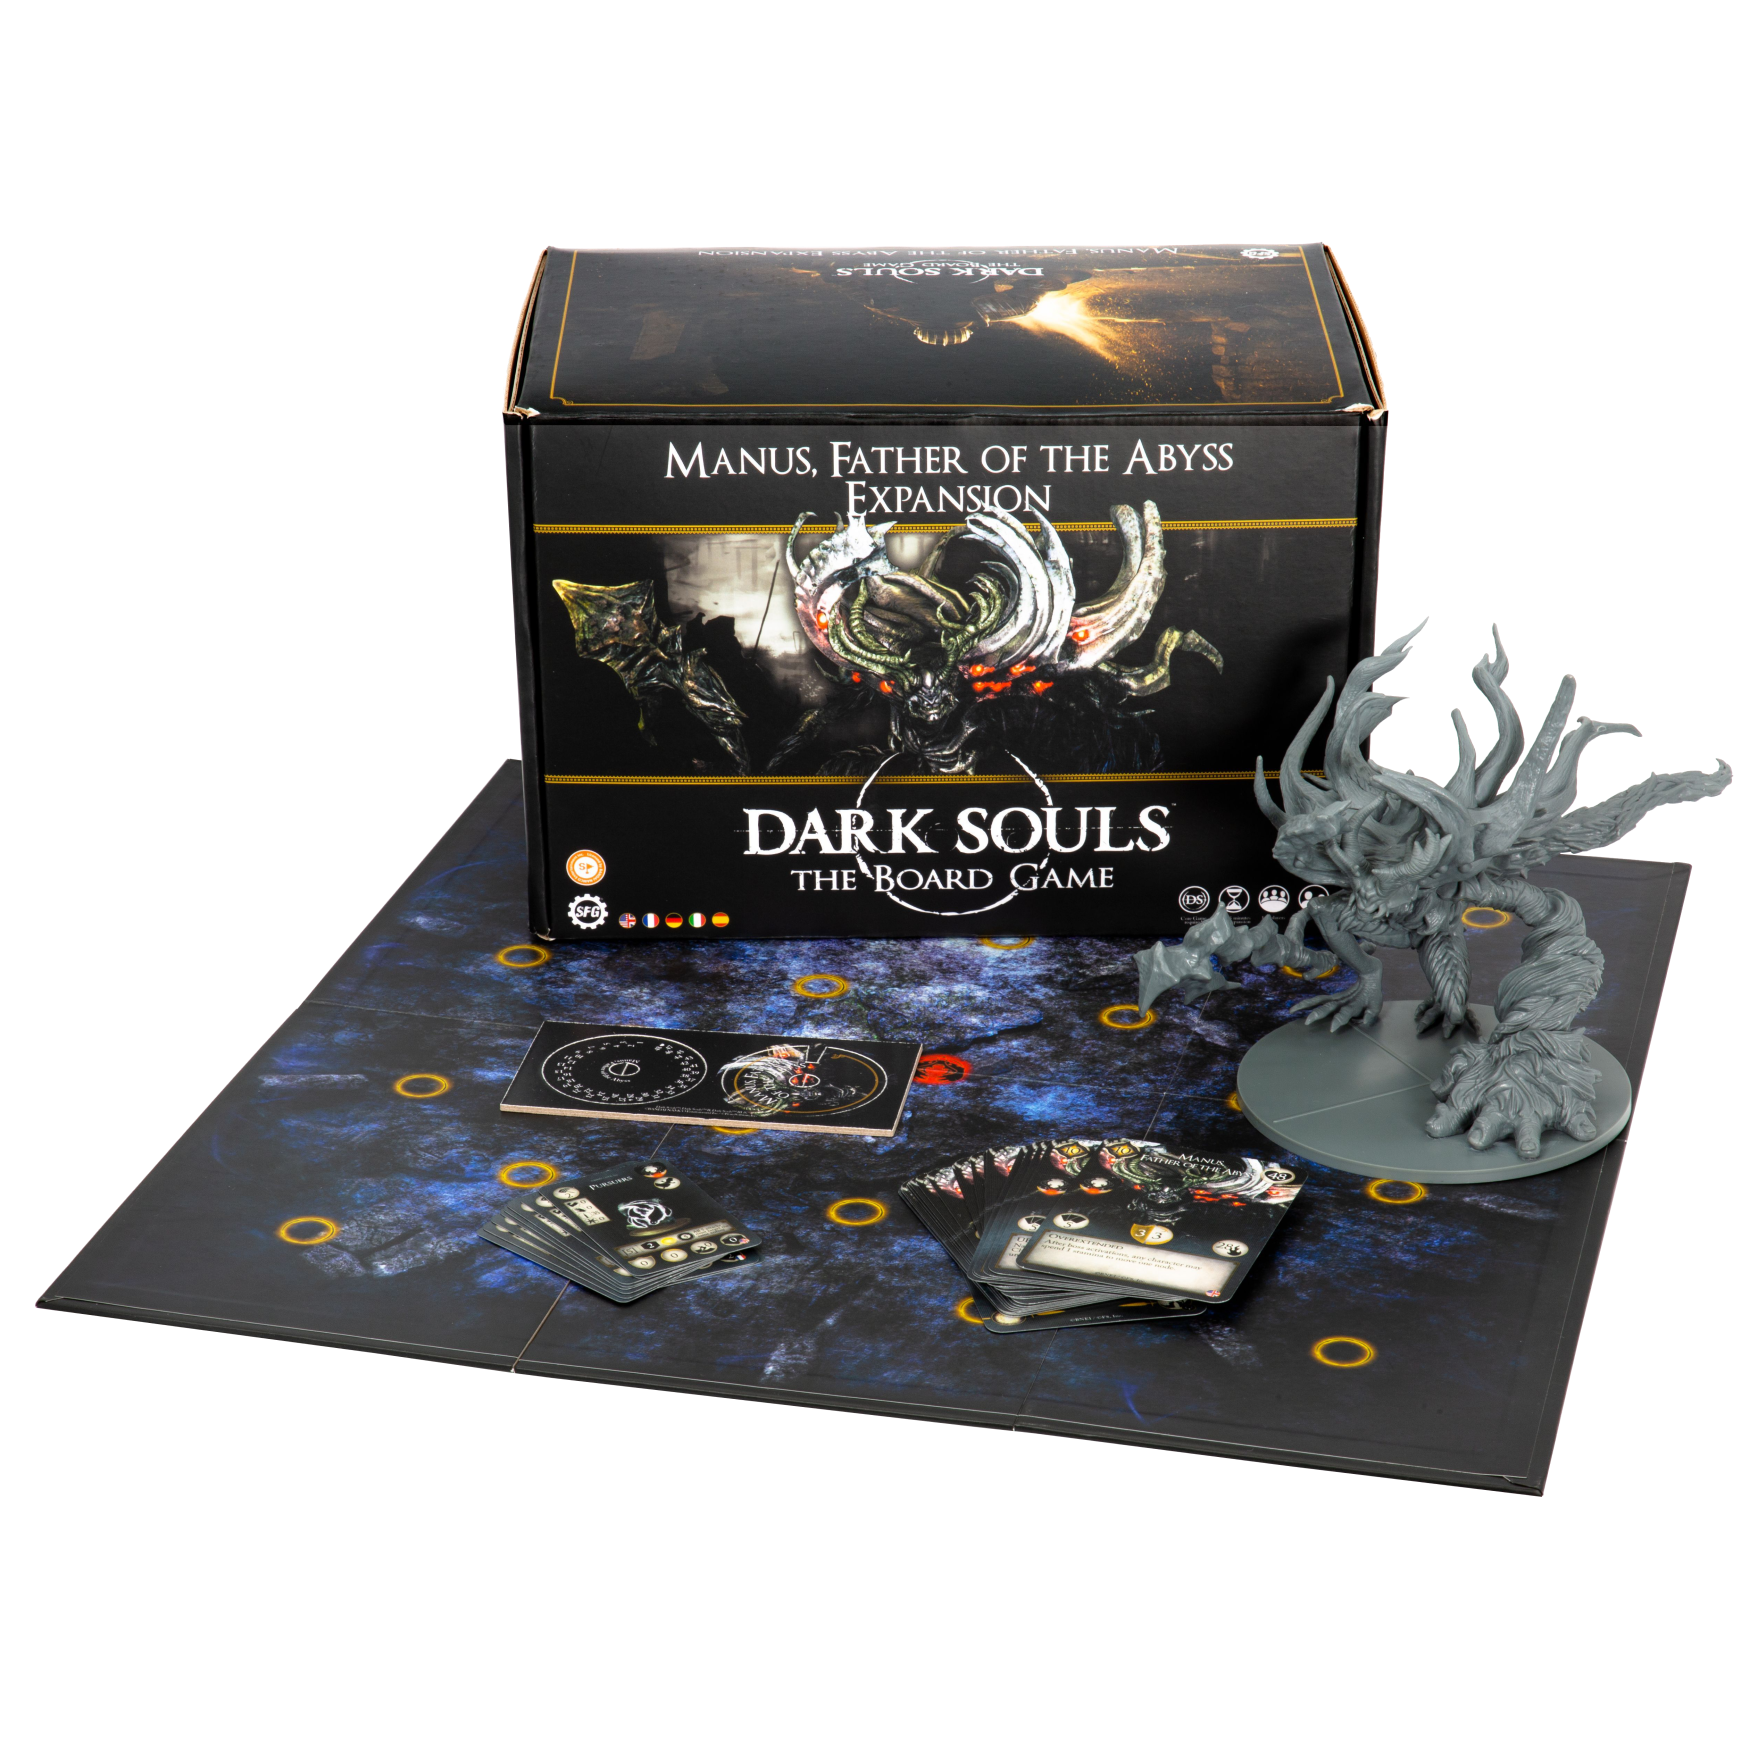 Steamforged Dark Souls Board Game: Manus, Father of the Abyss